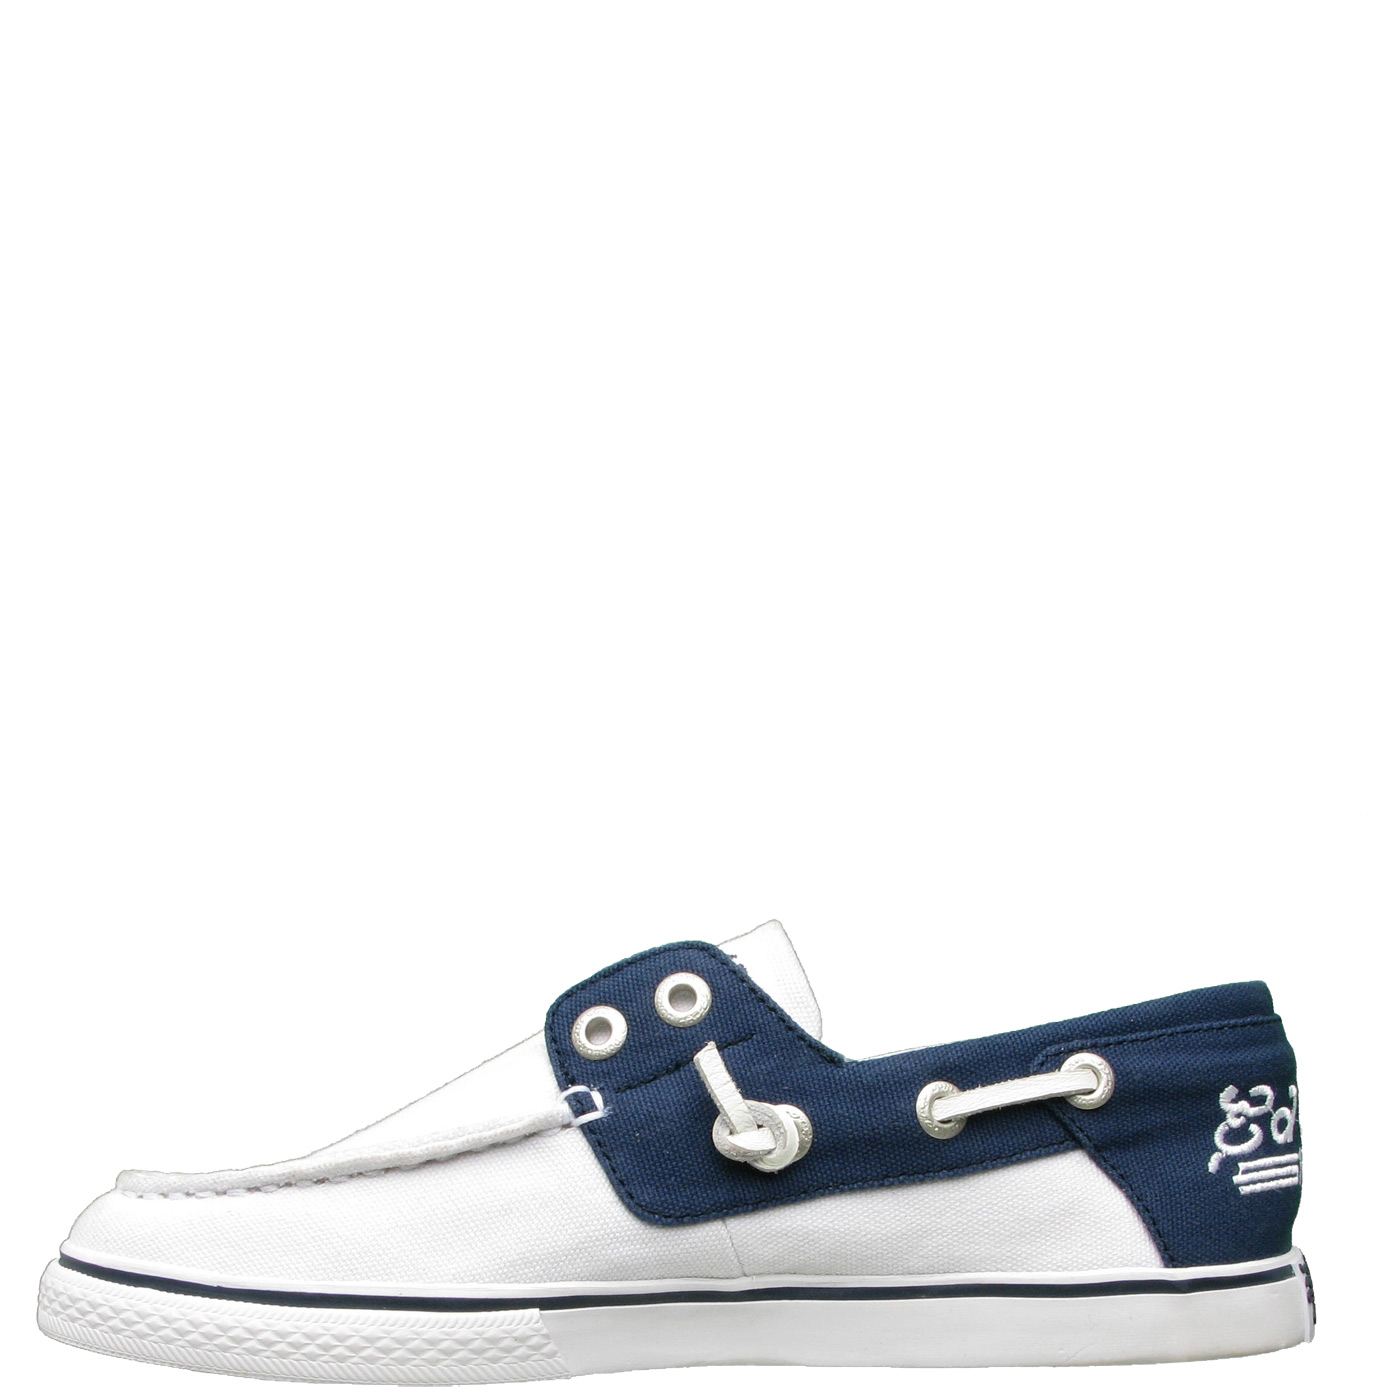 Ed Hardy Del Mar Boat Shoe for Women - White